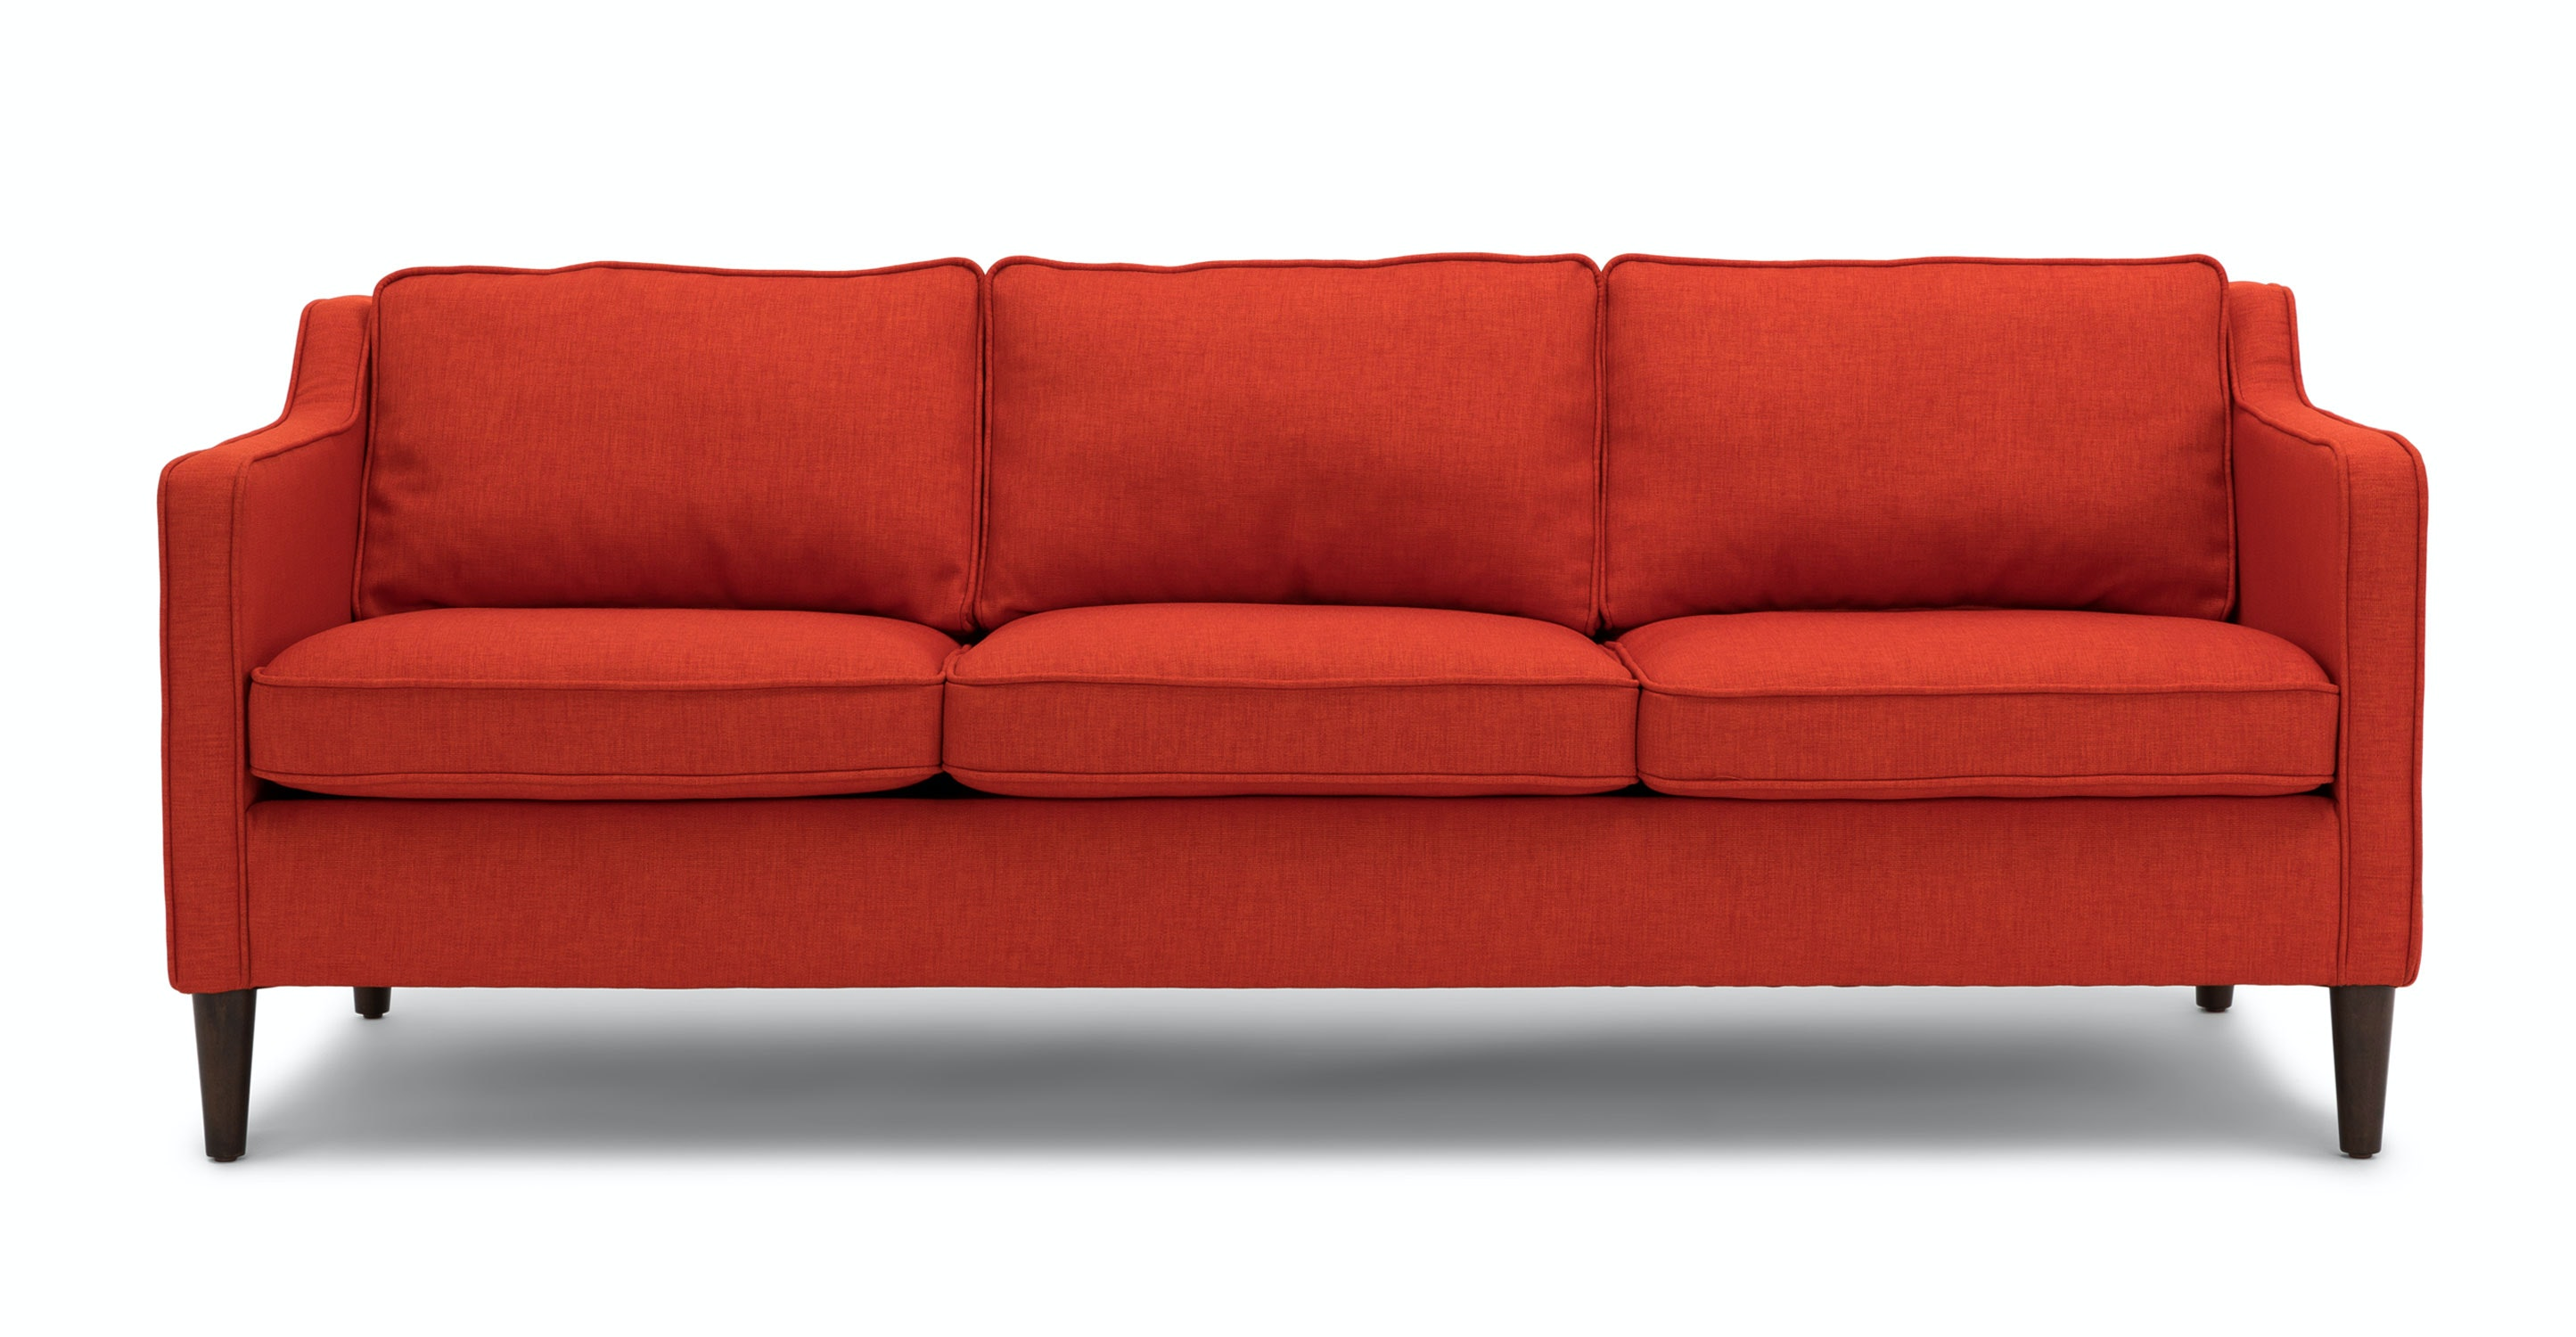 Cherie Fiery Orange Sofa   Sofas   Article | Modern, Mid Century And  Scandinavian Furniture